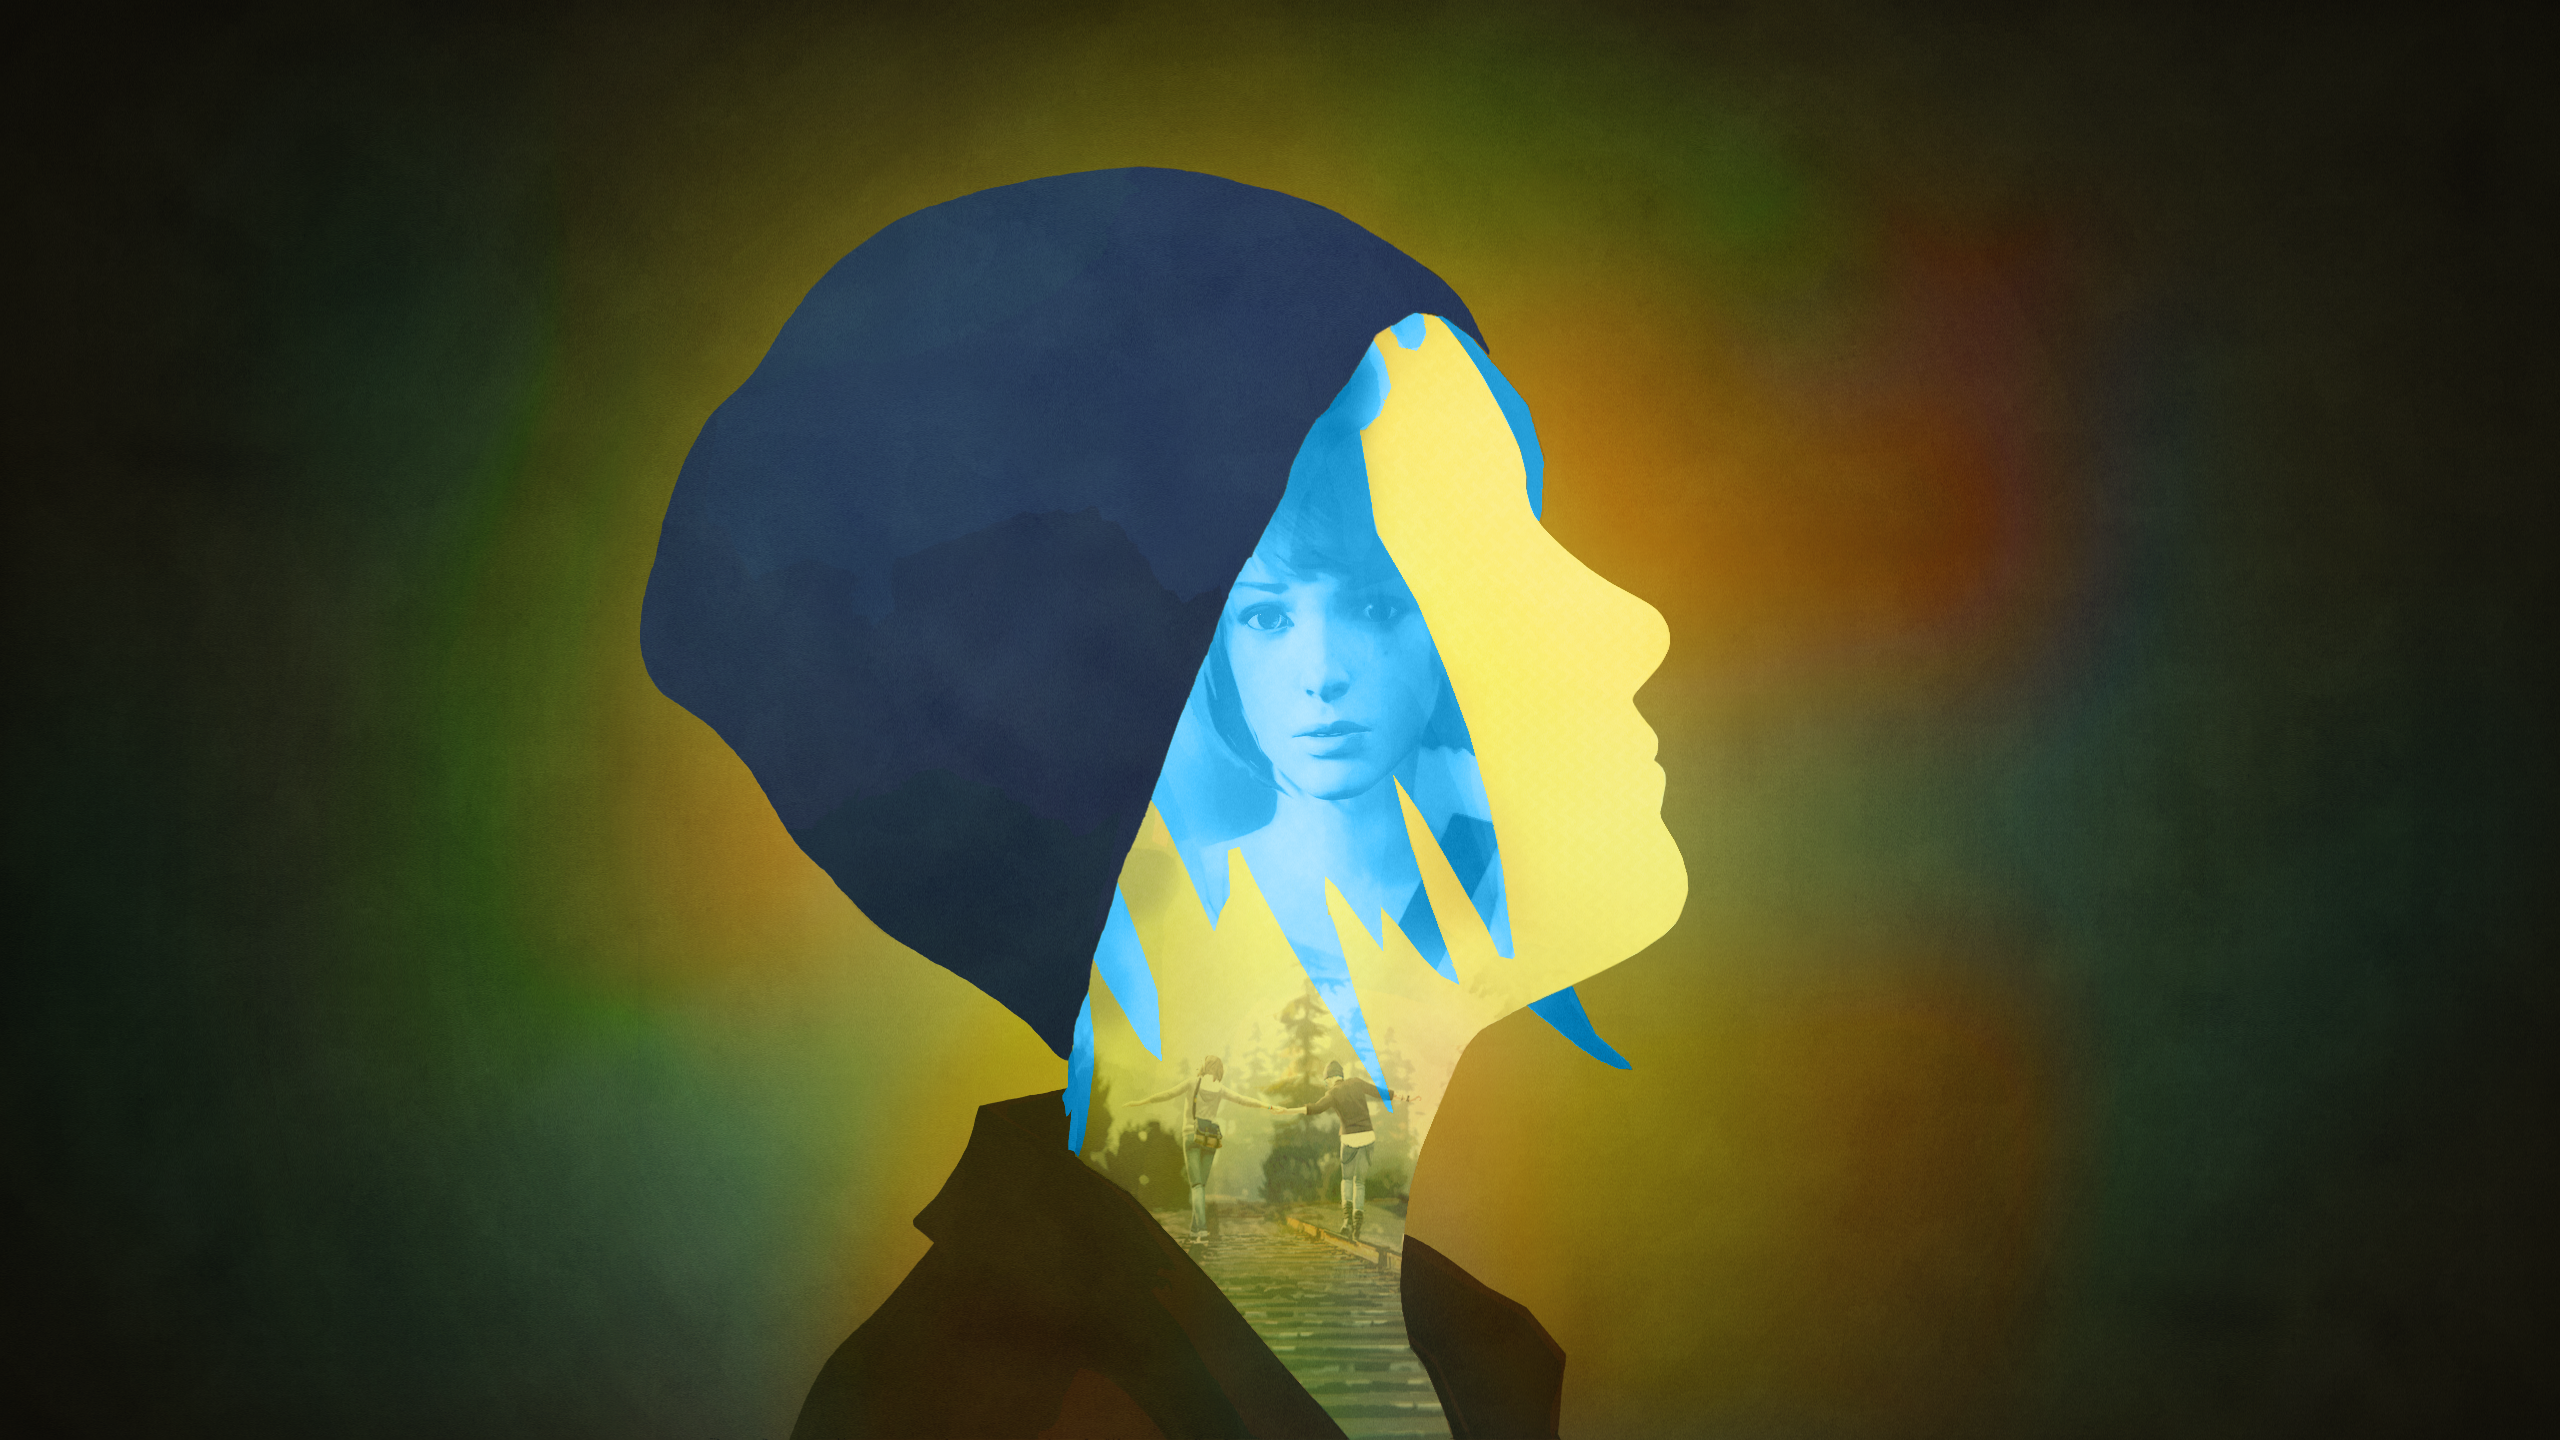 Life Is Strange - Chloe Silhouette (No logo) by RockLou